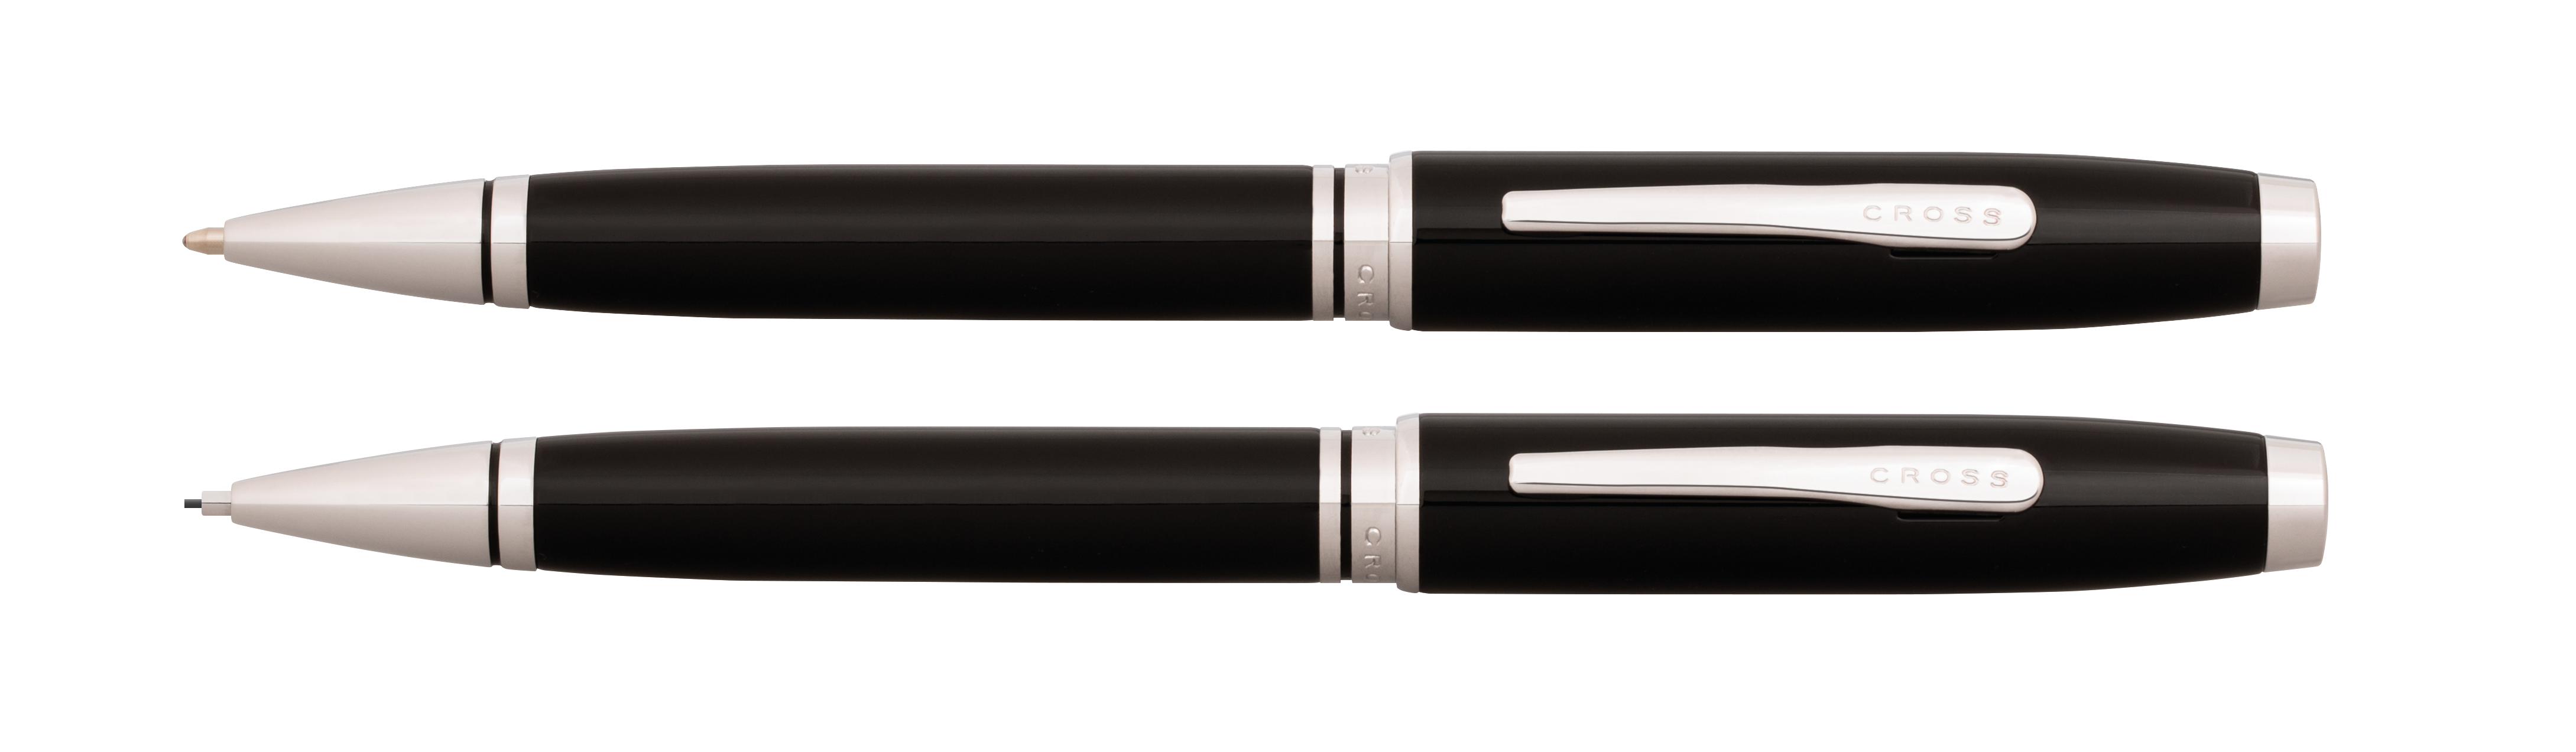 Coventry Black Lacquer Pen and Pencil Gift Set